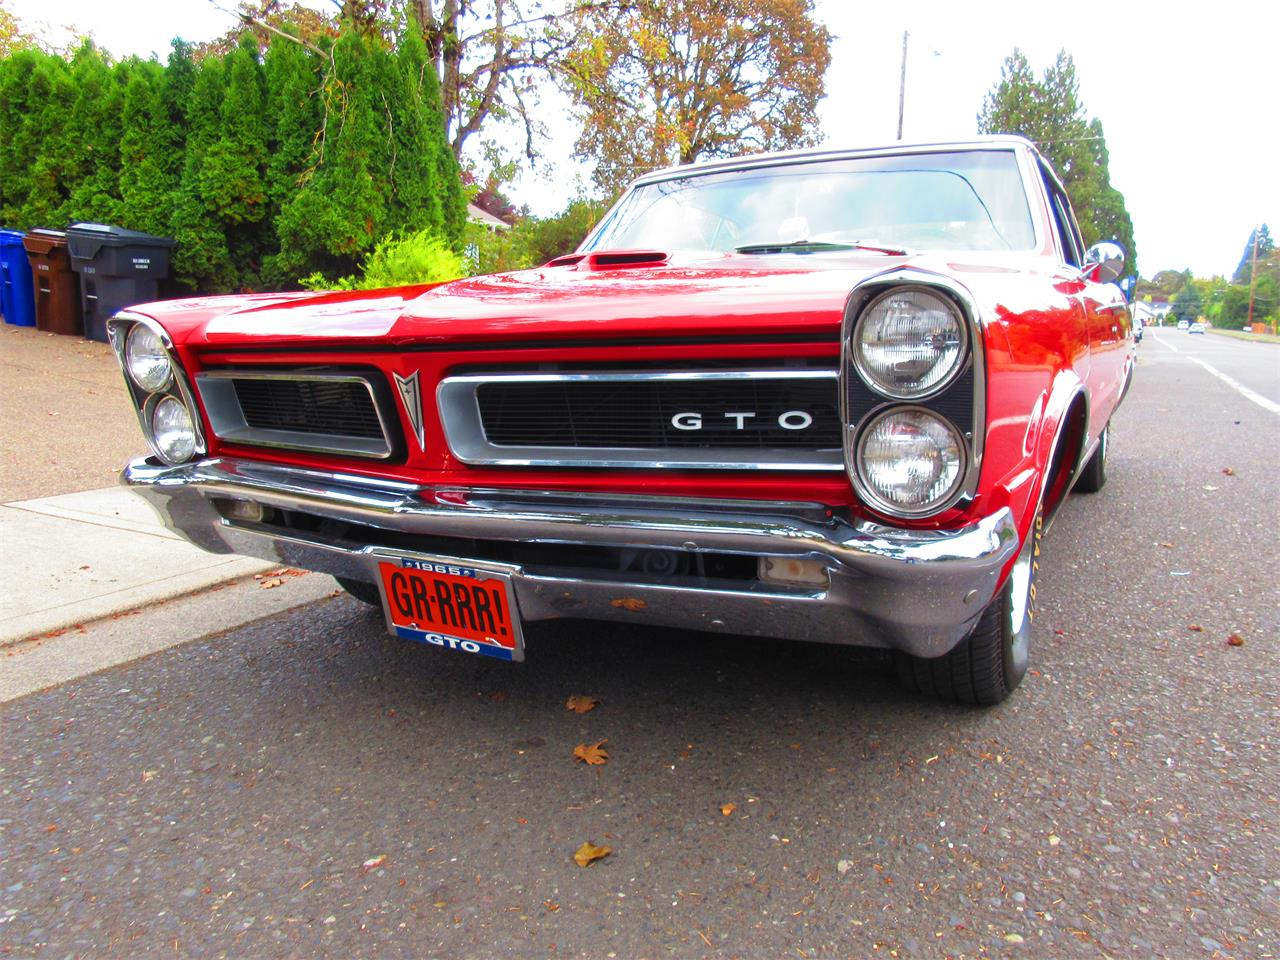 Large Picture of 1965 Pontiac GTO located in Oregon - $69,990.00 Offered by a Private Seller - OQVM